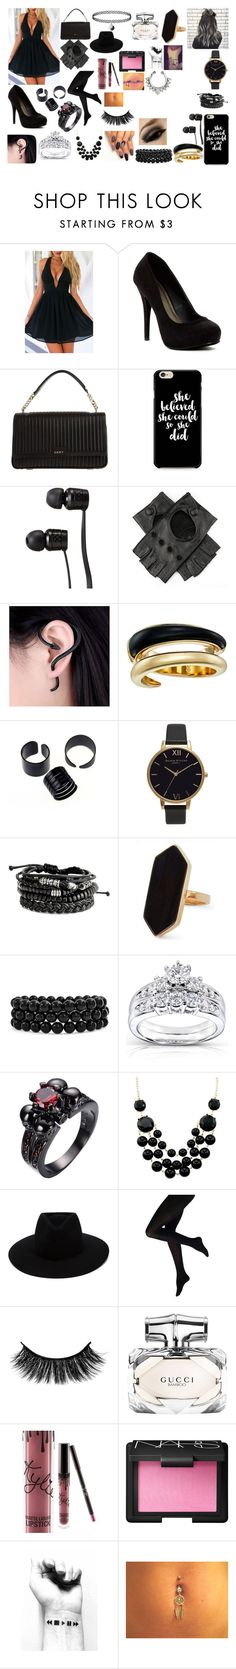 """Untitled #178"" by callmeaimeex ❤ liked on Polyvore featuring WithChic, Michael Antonio, DKNY, Vans, Black, Michael Kors, Olivia Burton, Jaeger, Bling Jewelry and Kobelli"